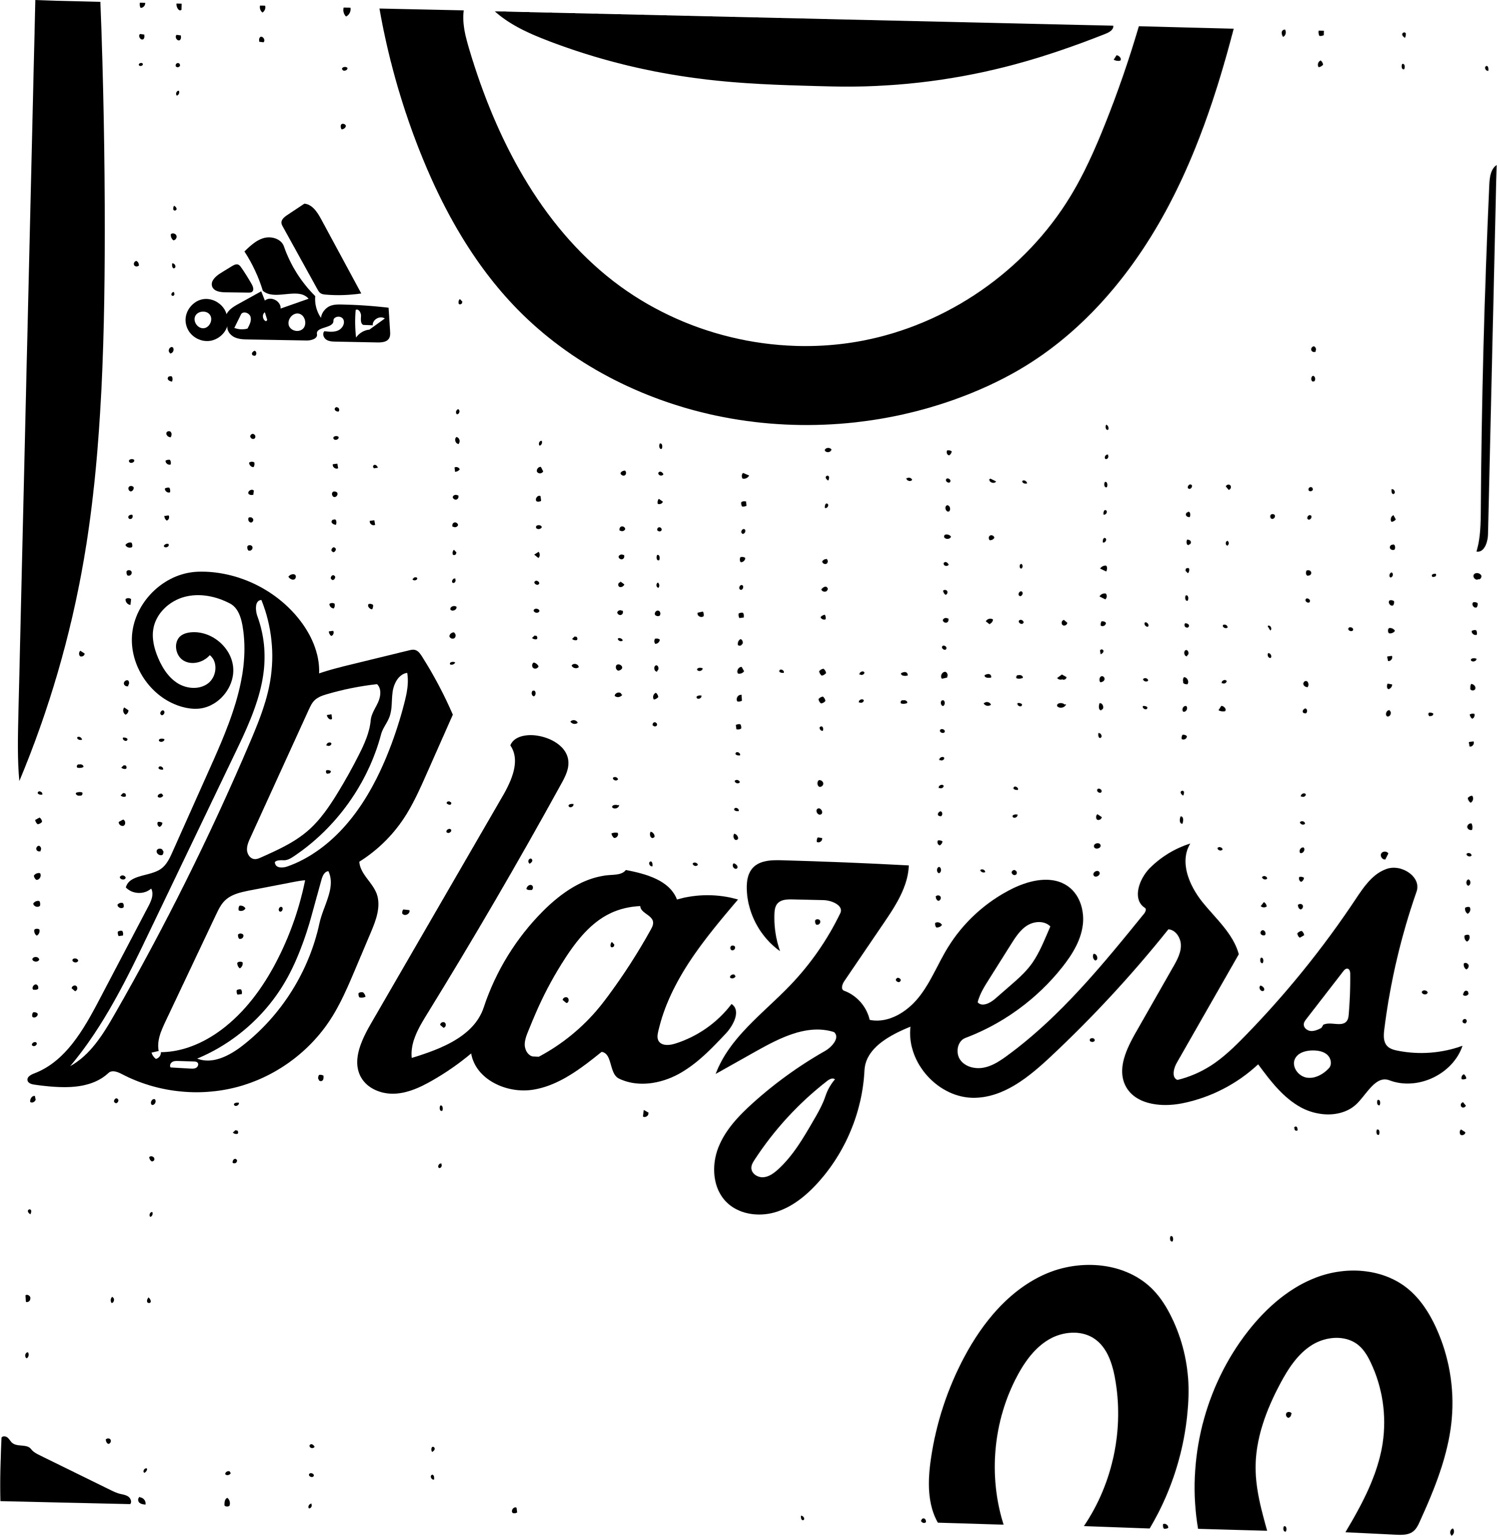 Nba 2k16 Court Designs And Jersey Creations